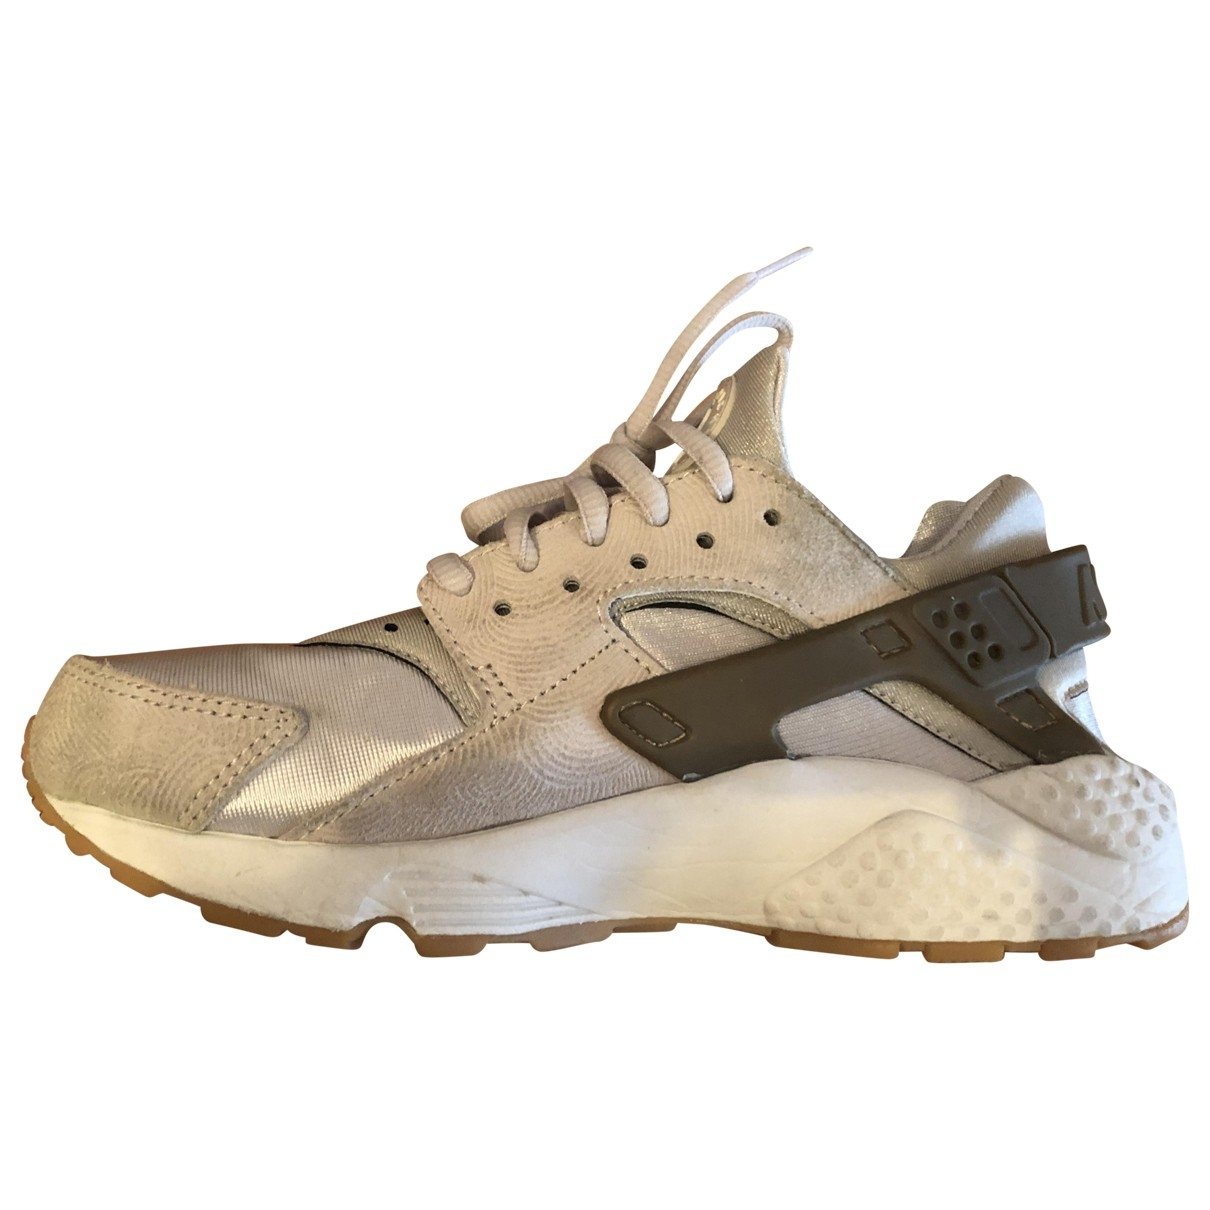 Nike Huarache Beige Cloth Trainers for Women 36 EU